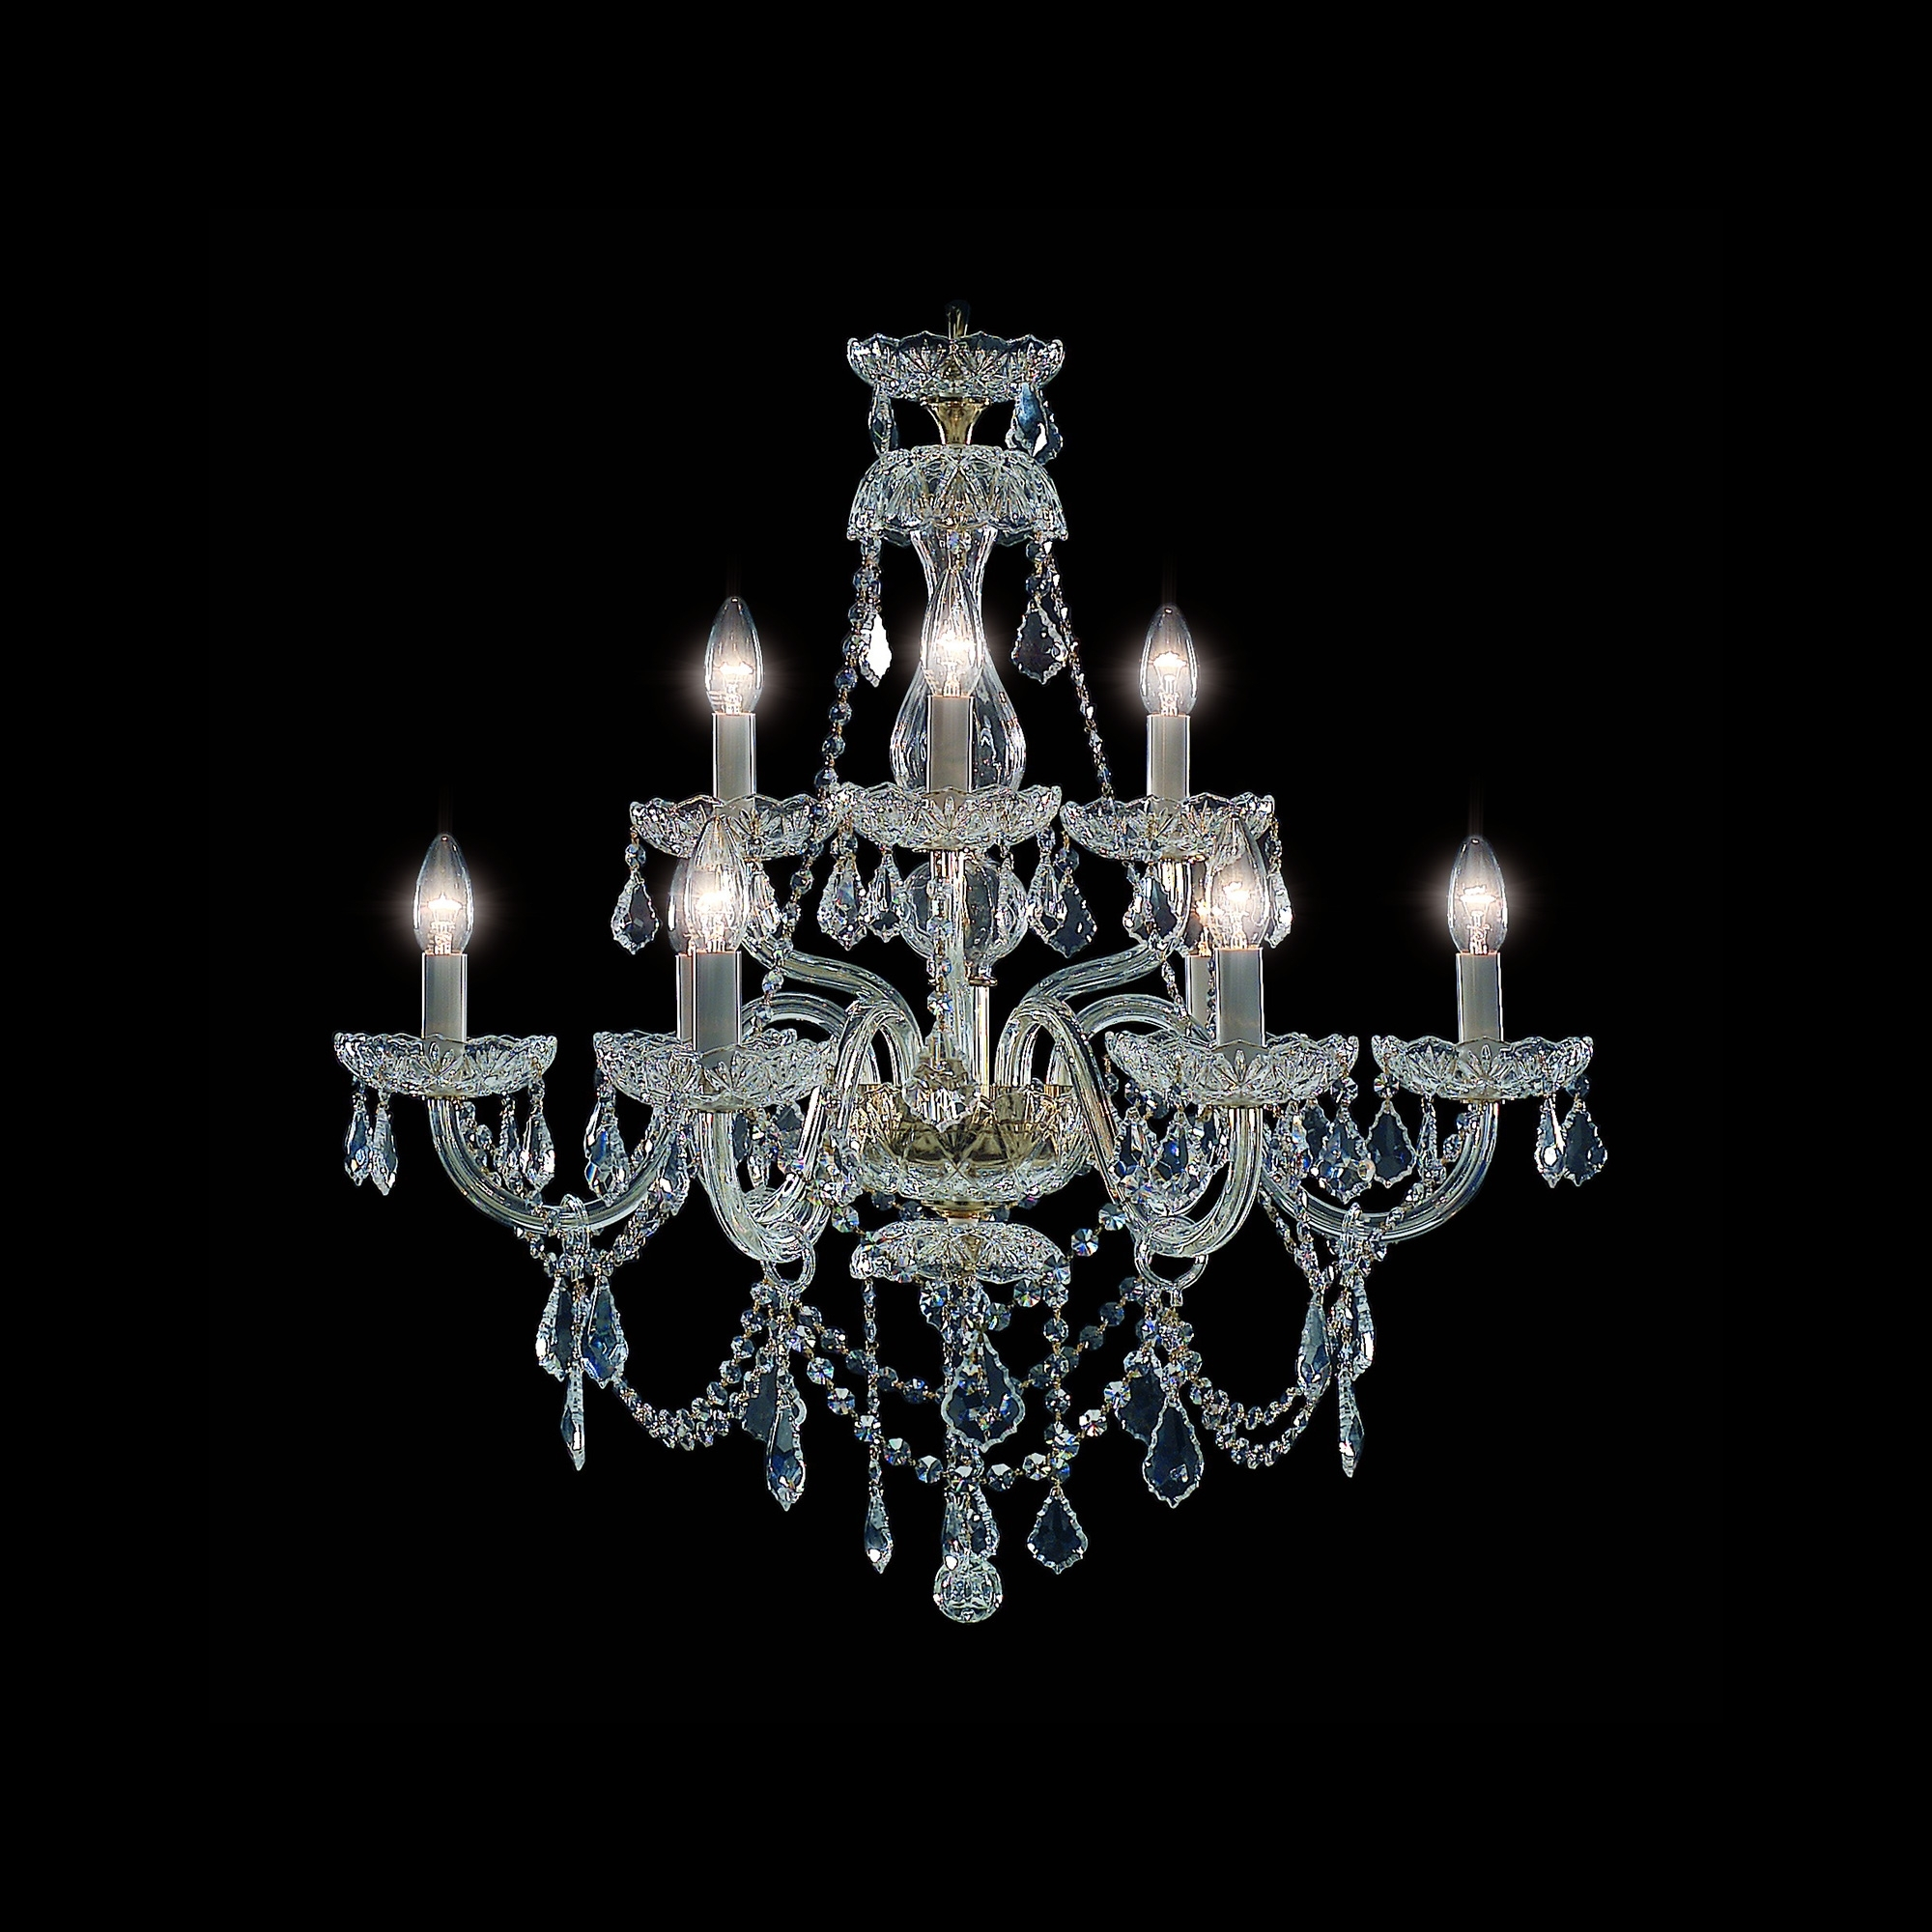 Recent Costco Chandelier Dining Table – Closdurocnoir In Costco Chandeliers (View 18 of 20)